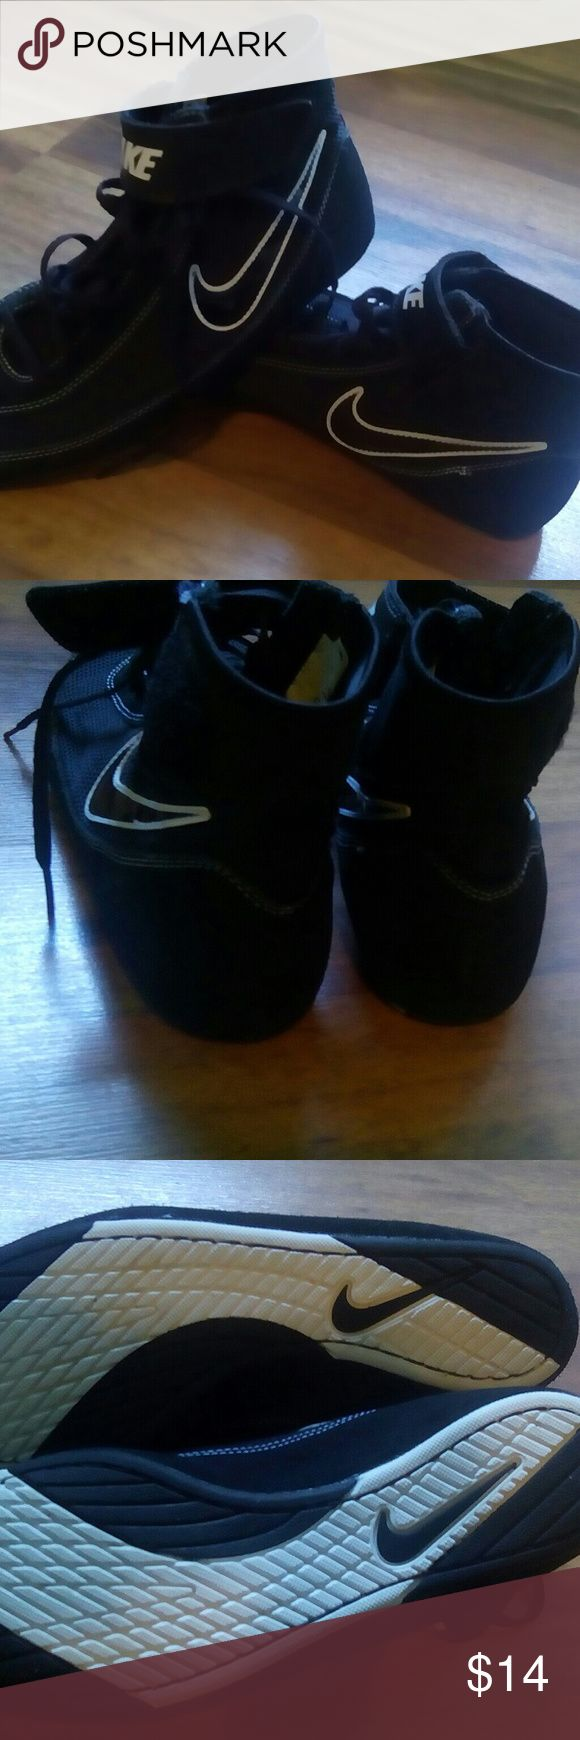 10.5 Nike wrestling shoes Brand new Never worn Black and white Nike wrestling shoes Nike Shoes Athletic Shoes